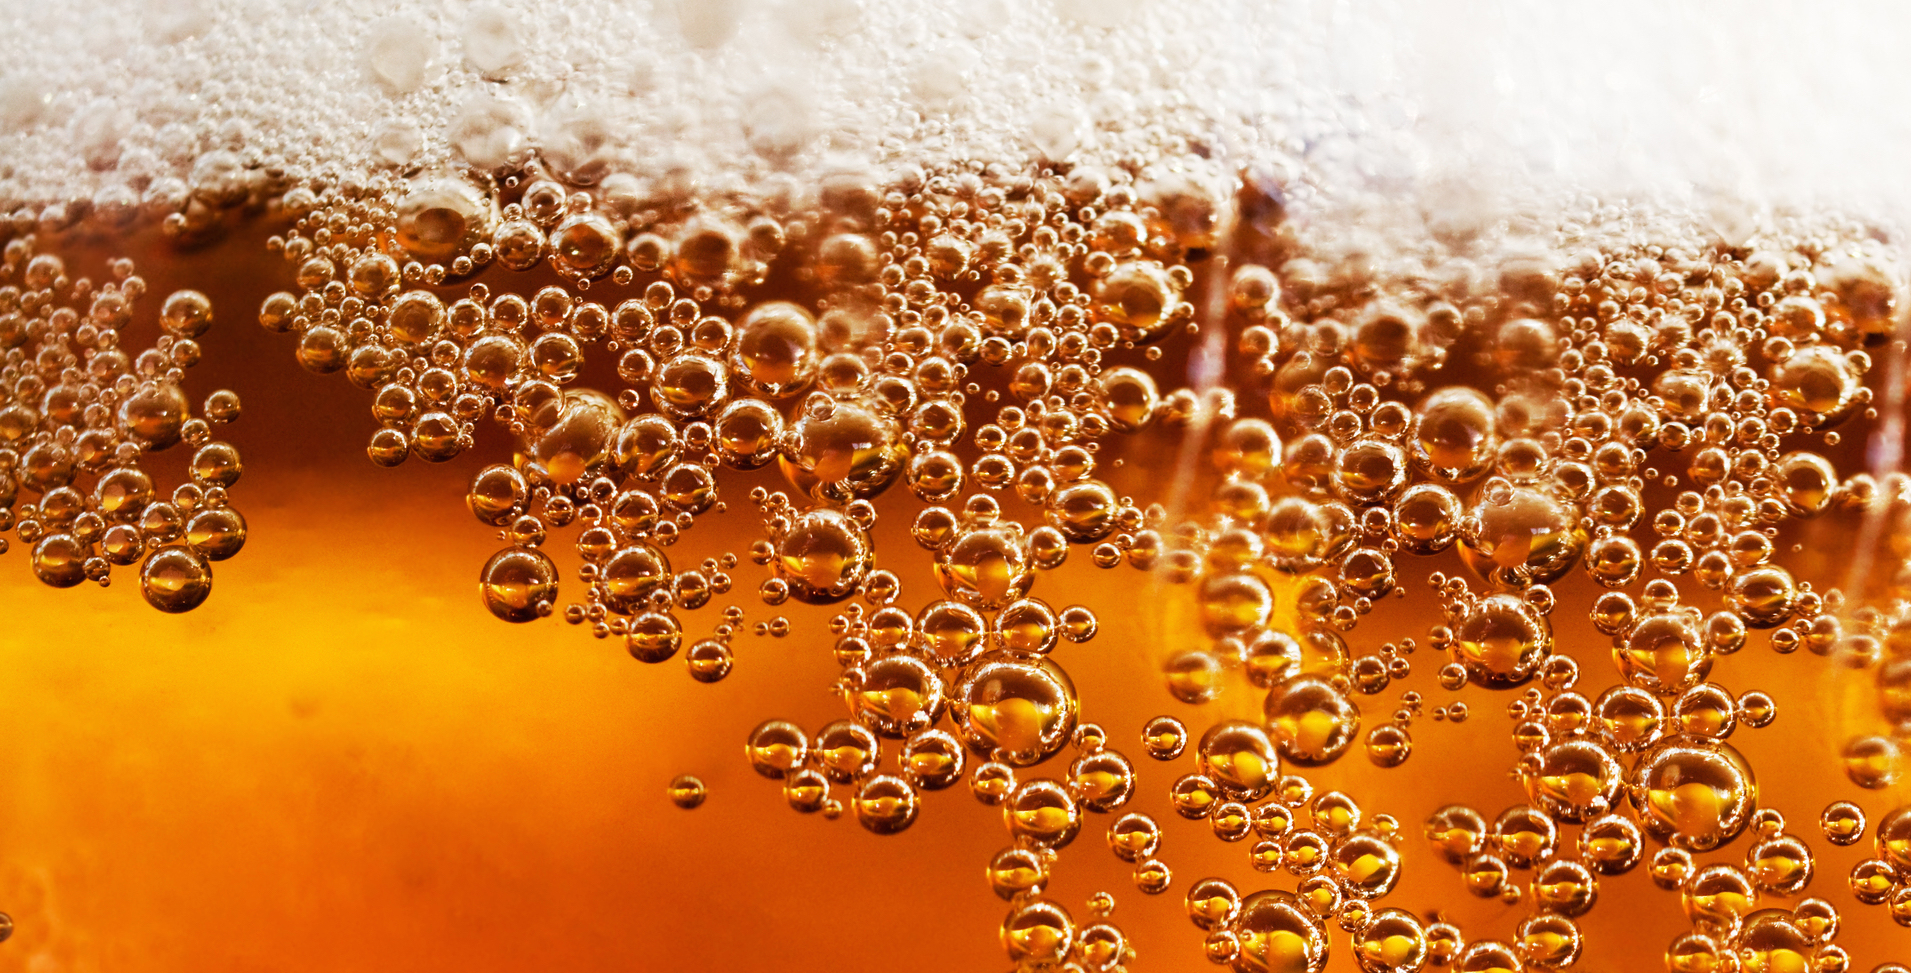 Beer Close up cover image